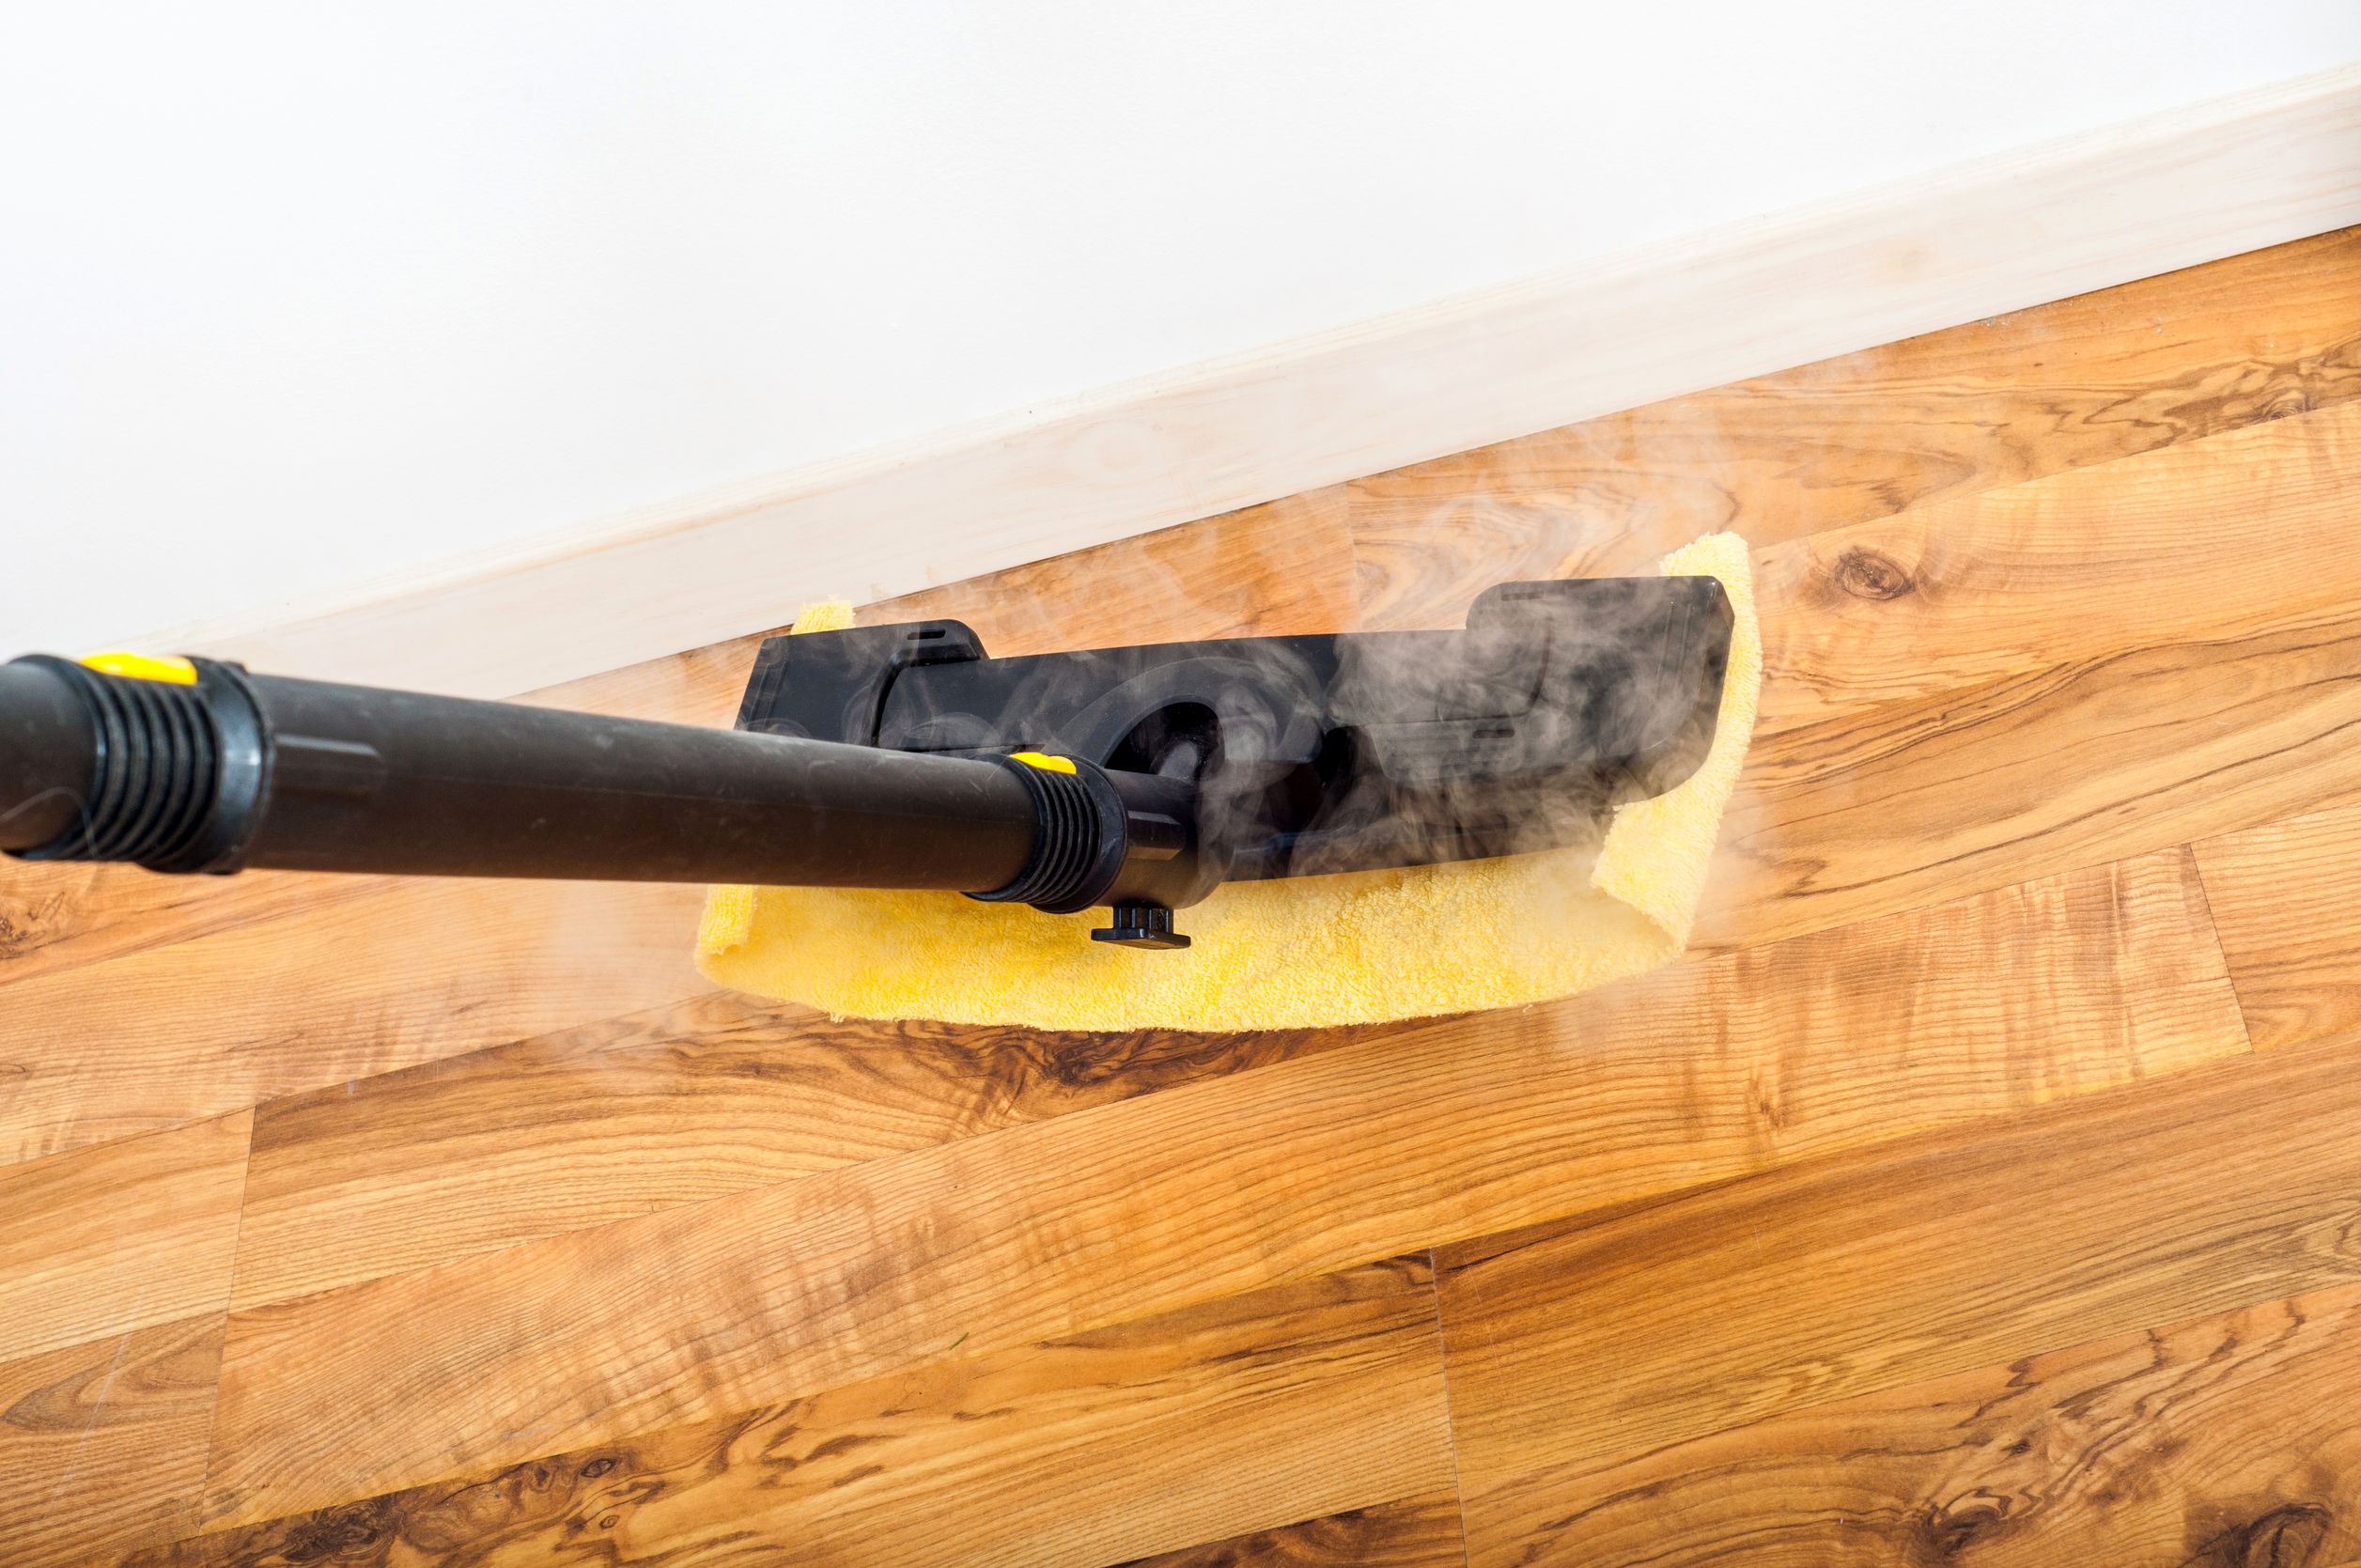 Product Review: Steam Mops On Wood Floors